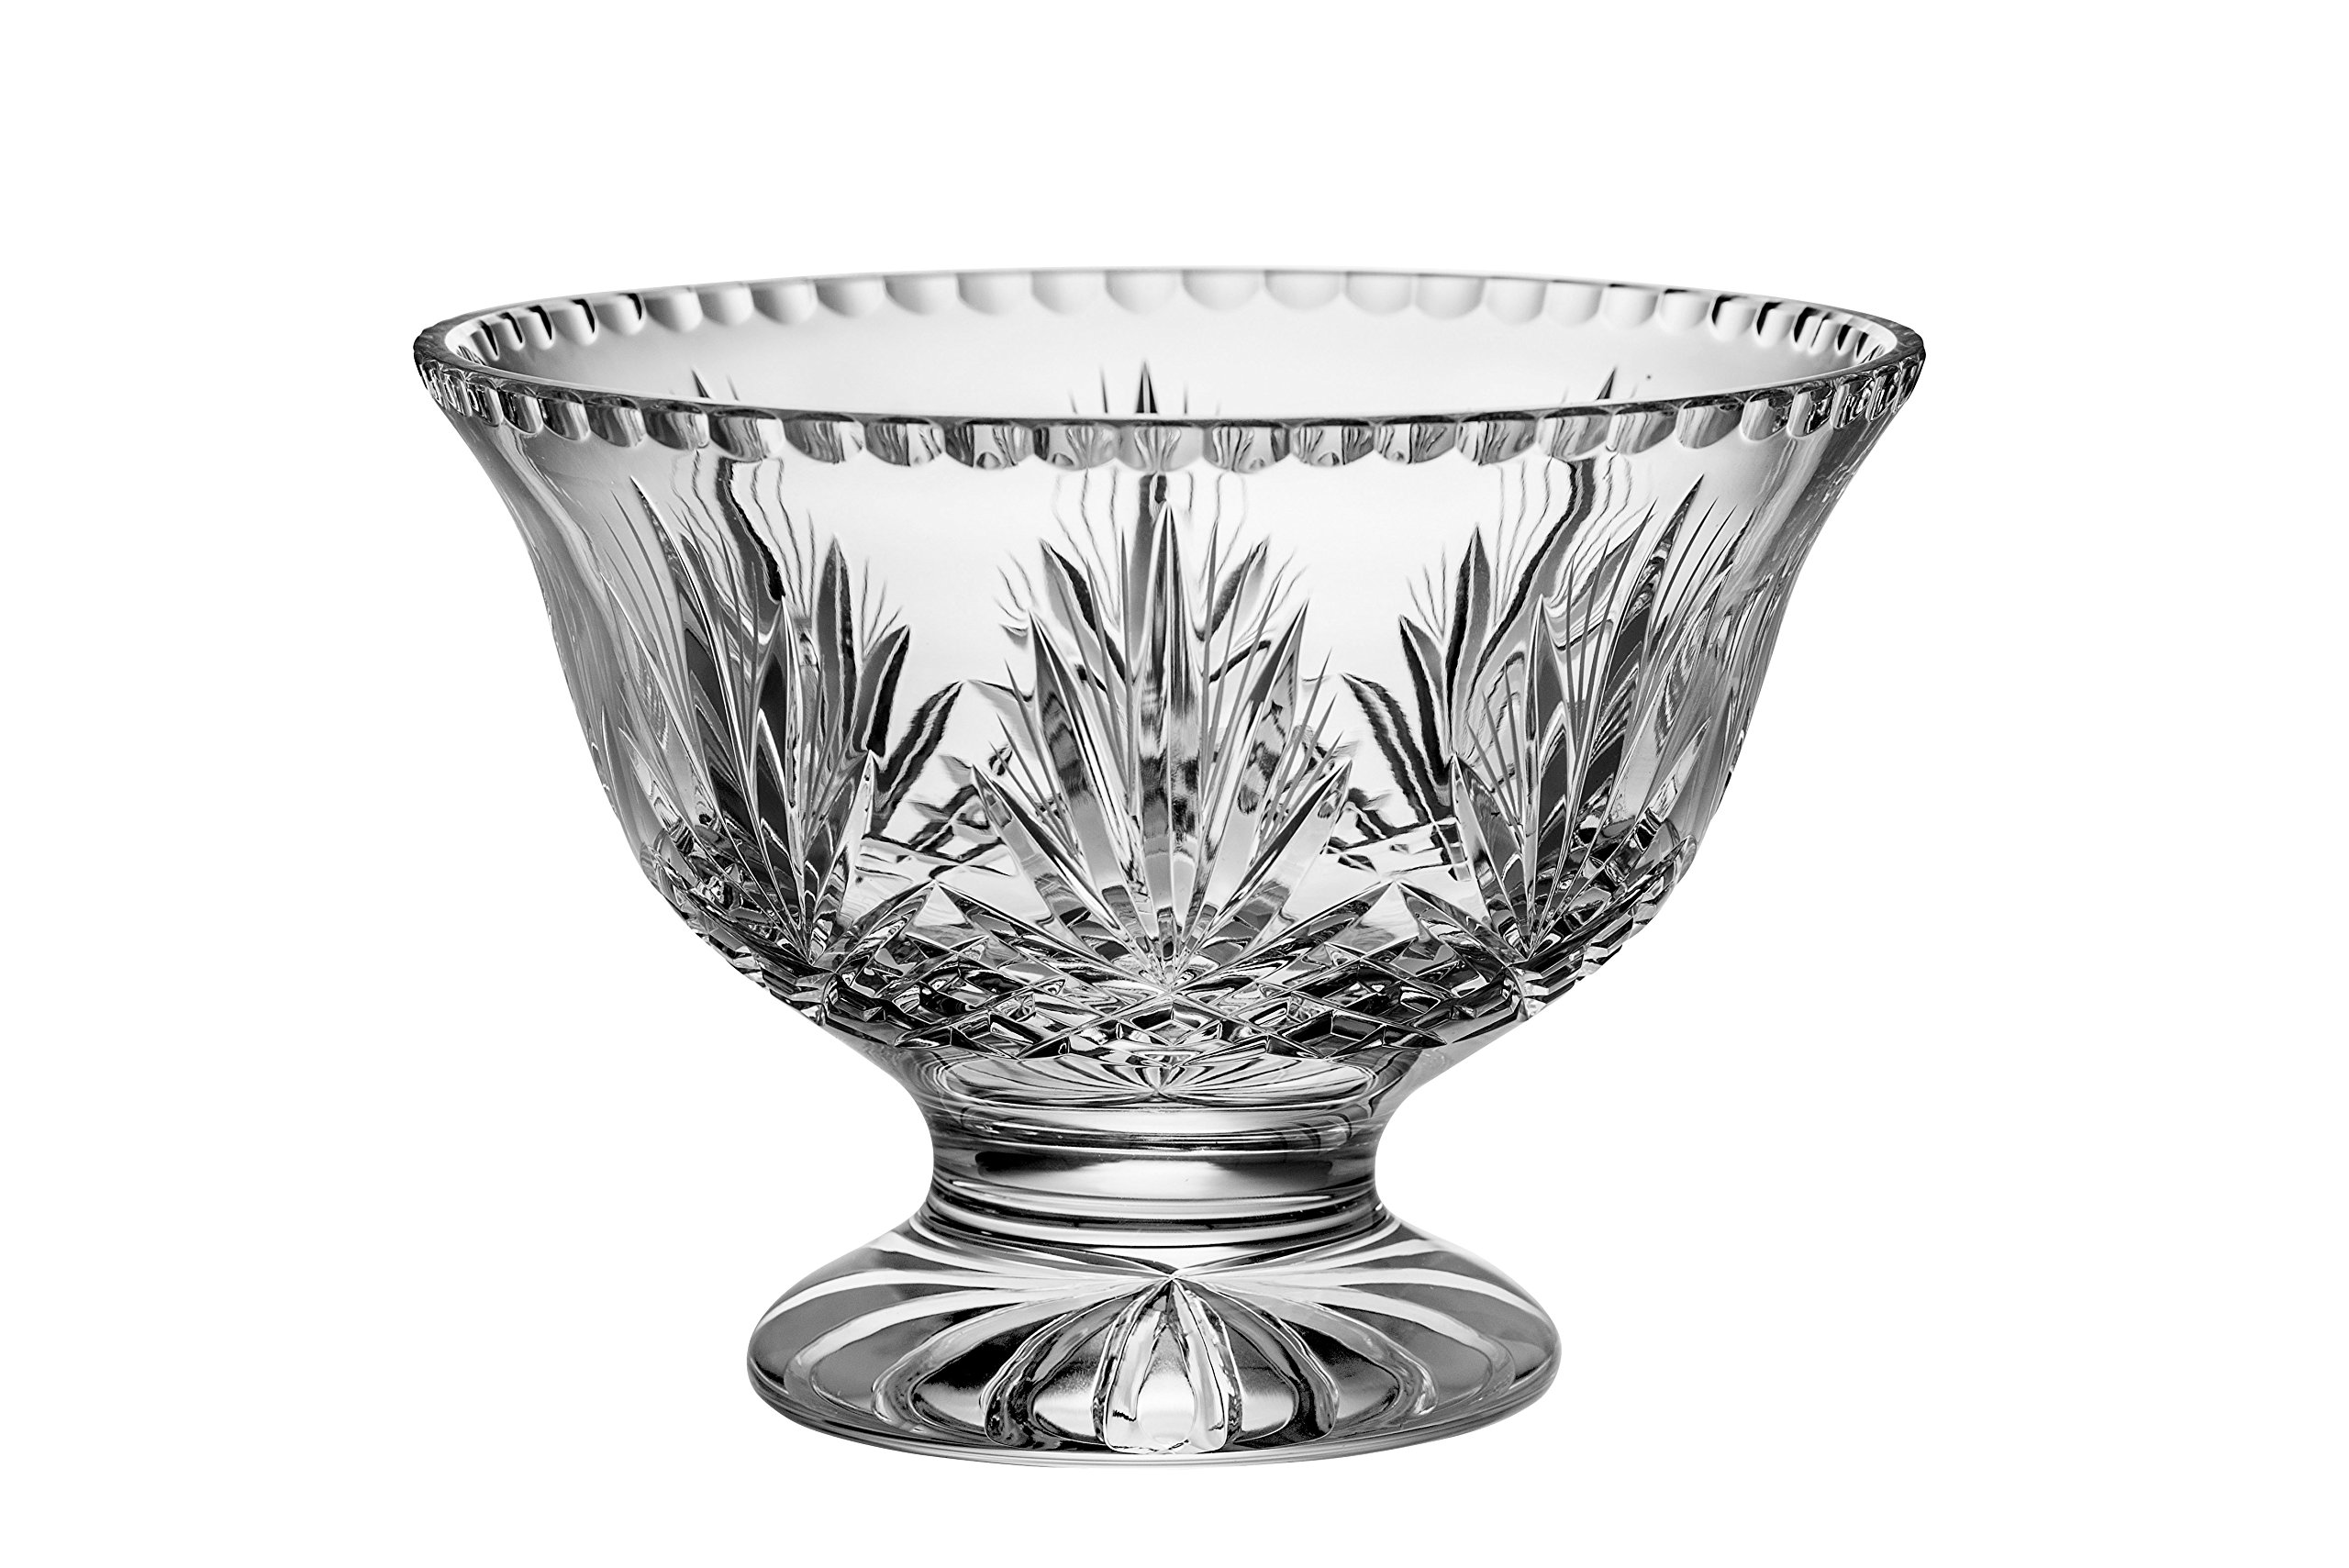 Majestic Gifts Hand Cut Crystal Footed Bowl 10'', Large, Clear